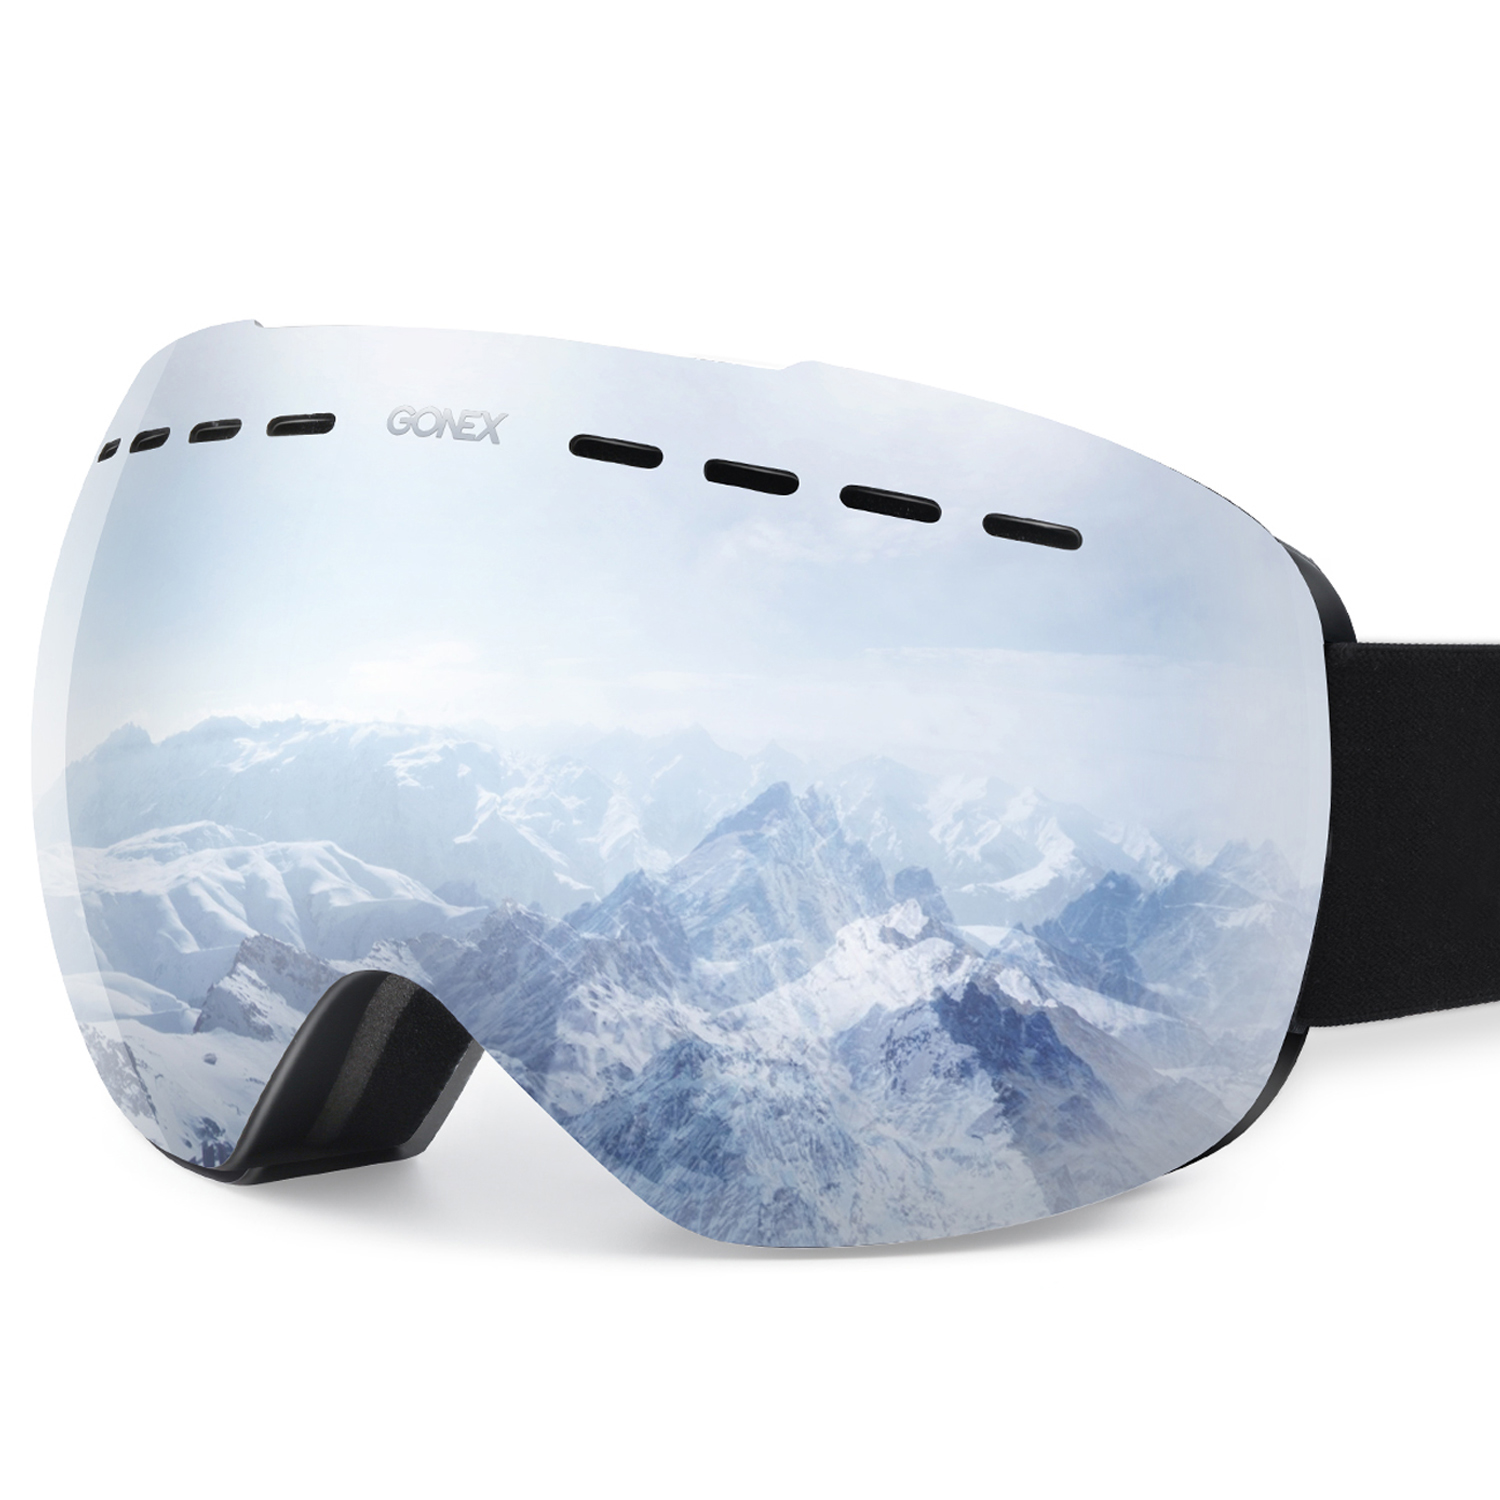 Gonex Ski Goggles OTG Anti-fog Windproof UV Protection Snowboard Goggles with Box for Men & Women by